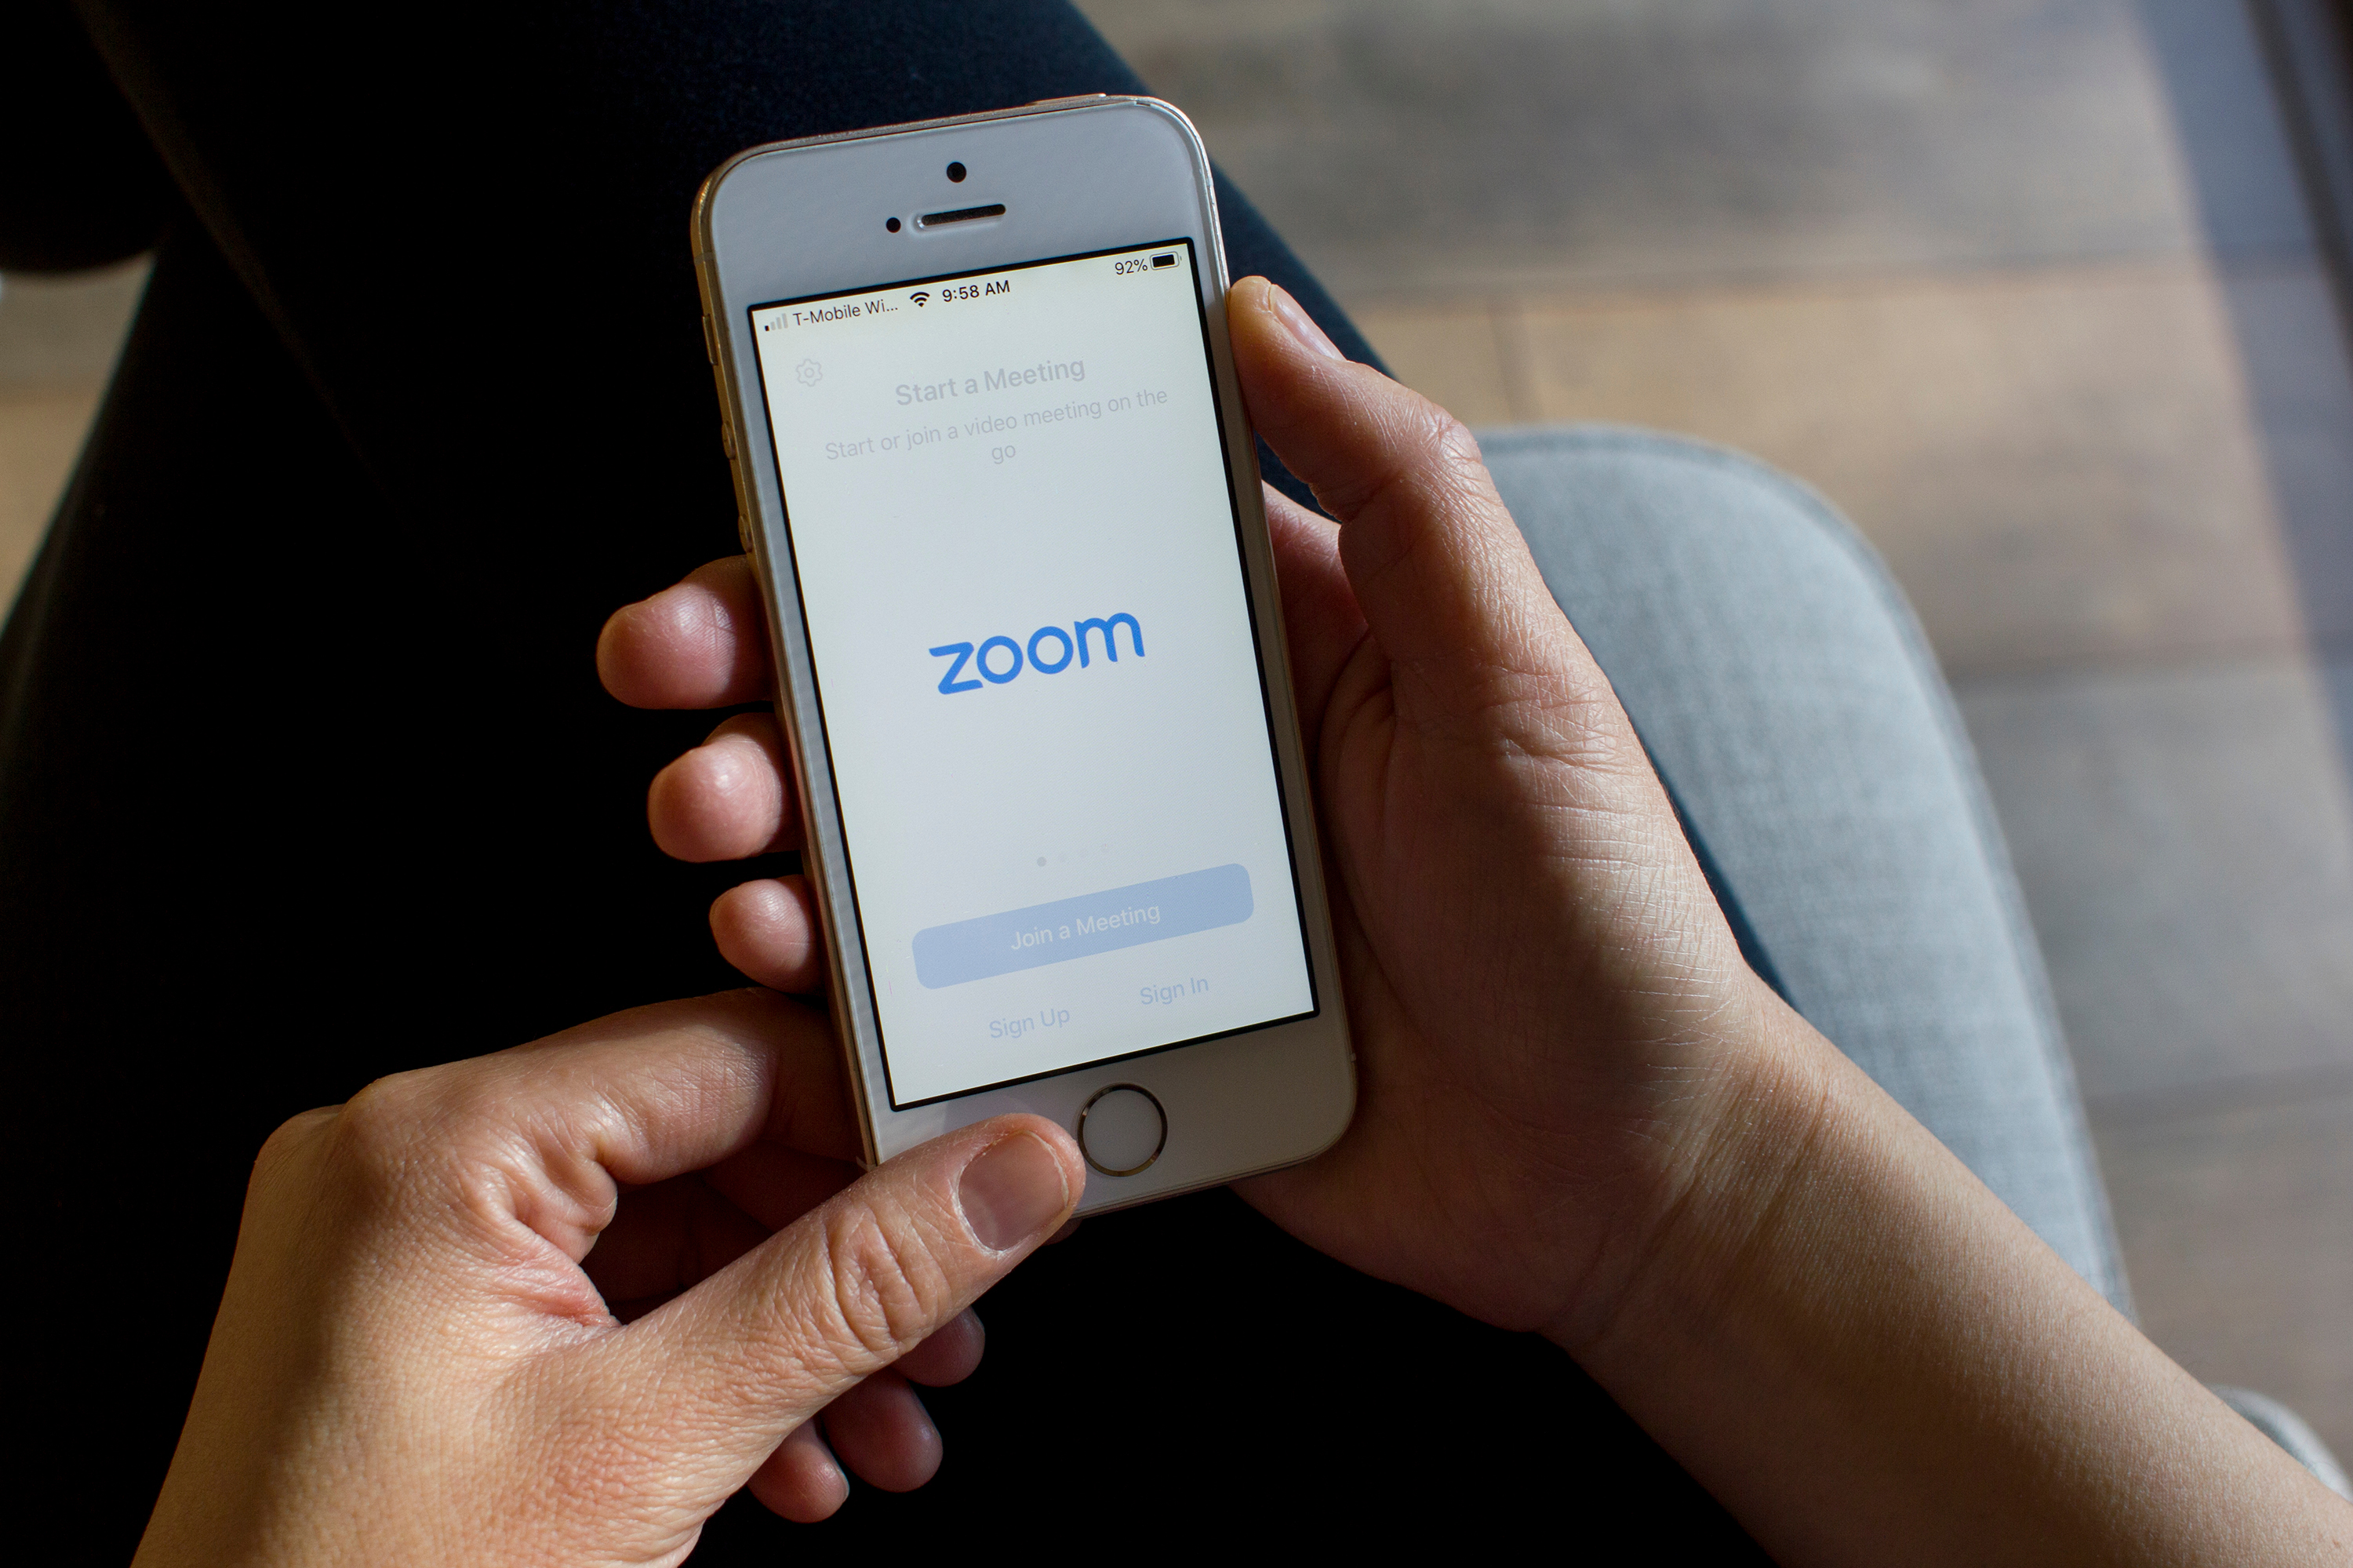 FBI warns video calls are getting hijacked. It's called Zoombombing